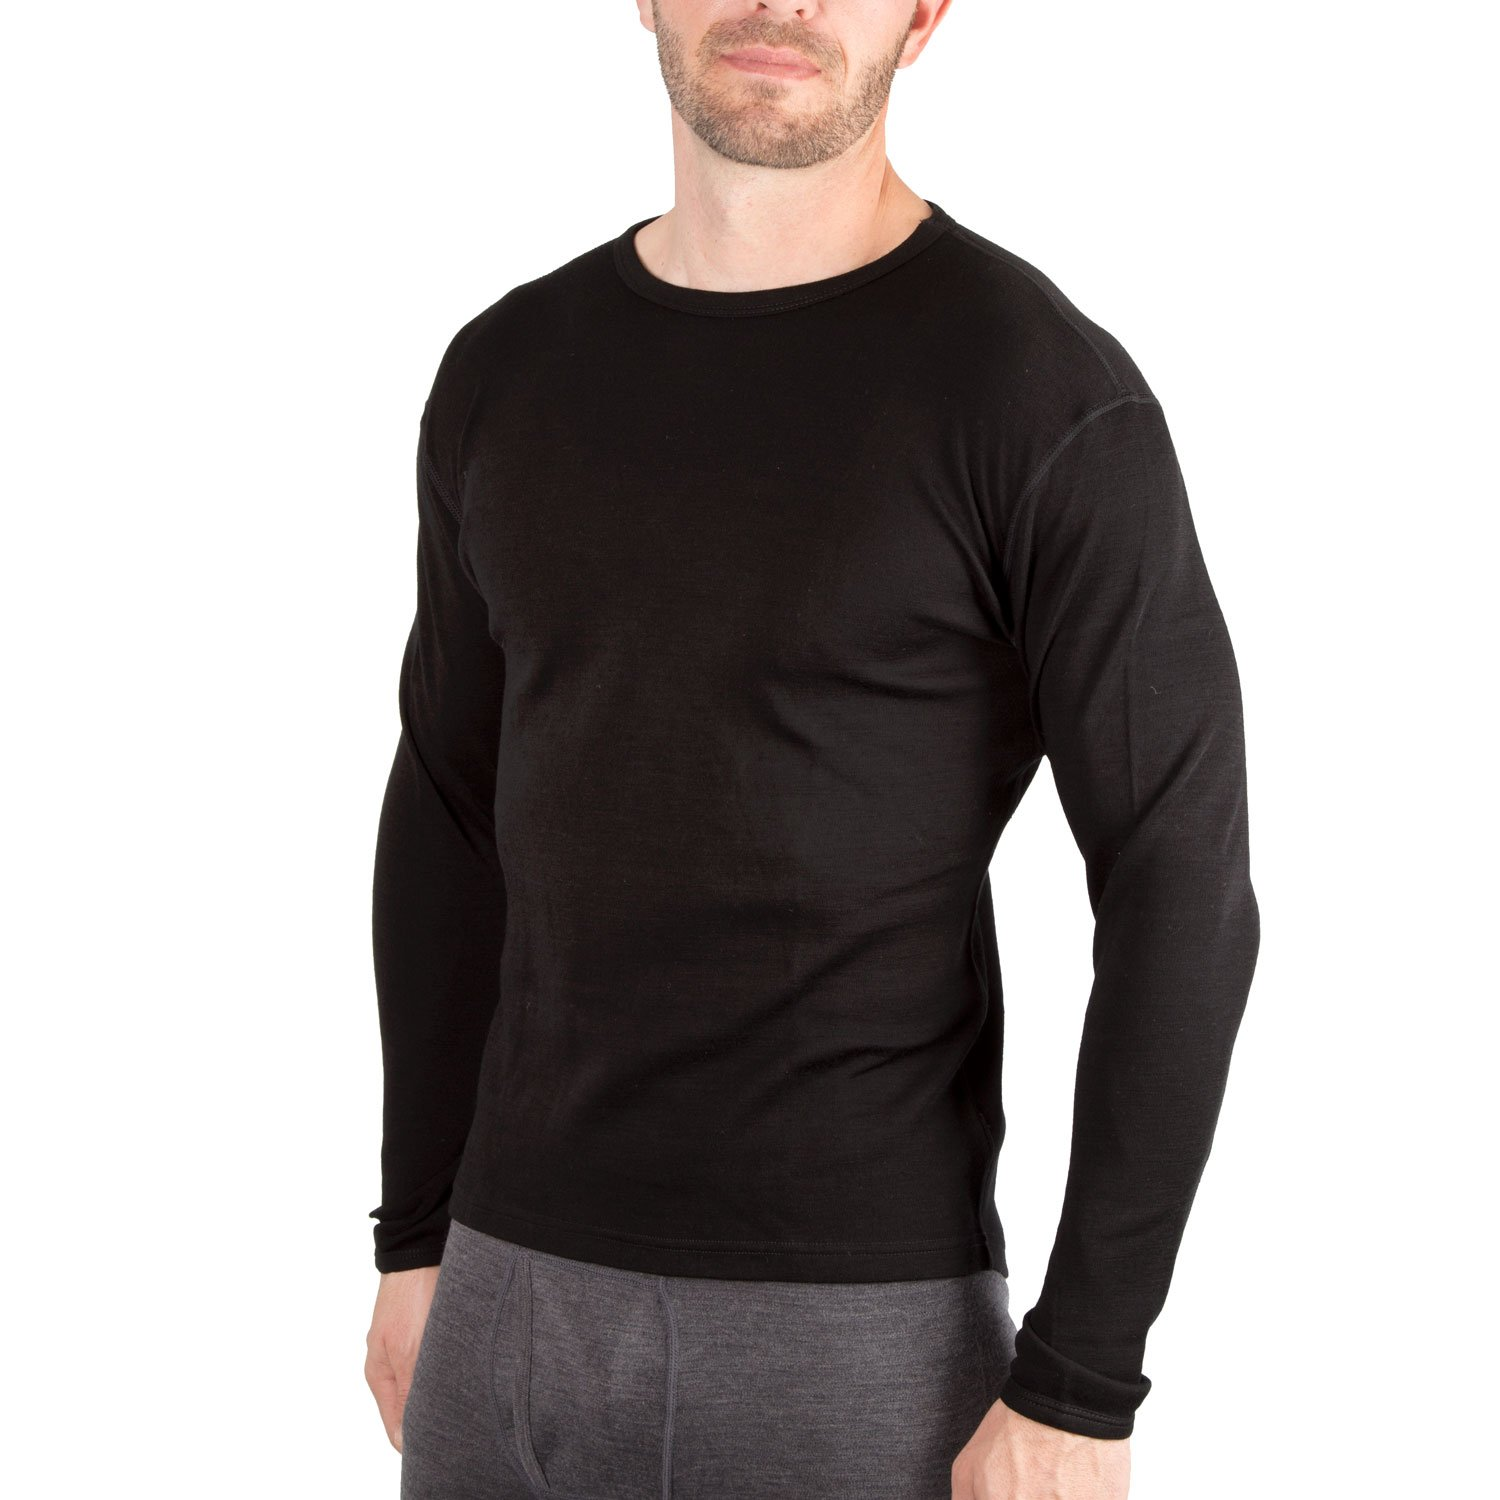 MERIWOOL Men's Merino Wool Base layer Crew